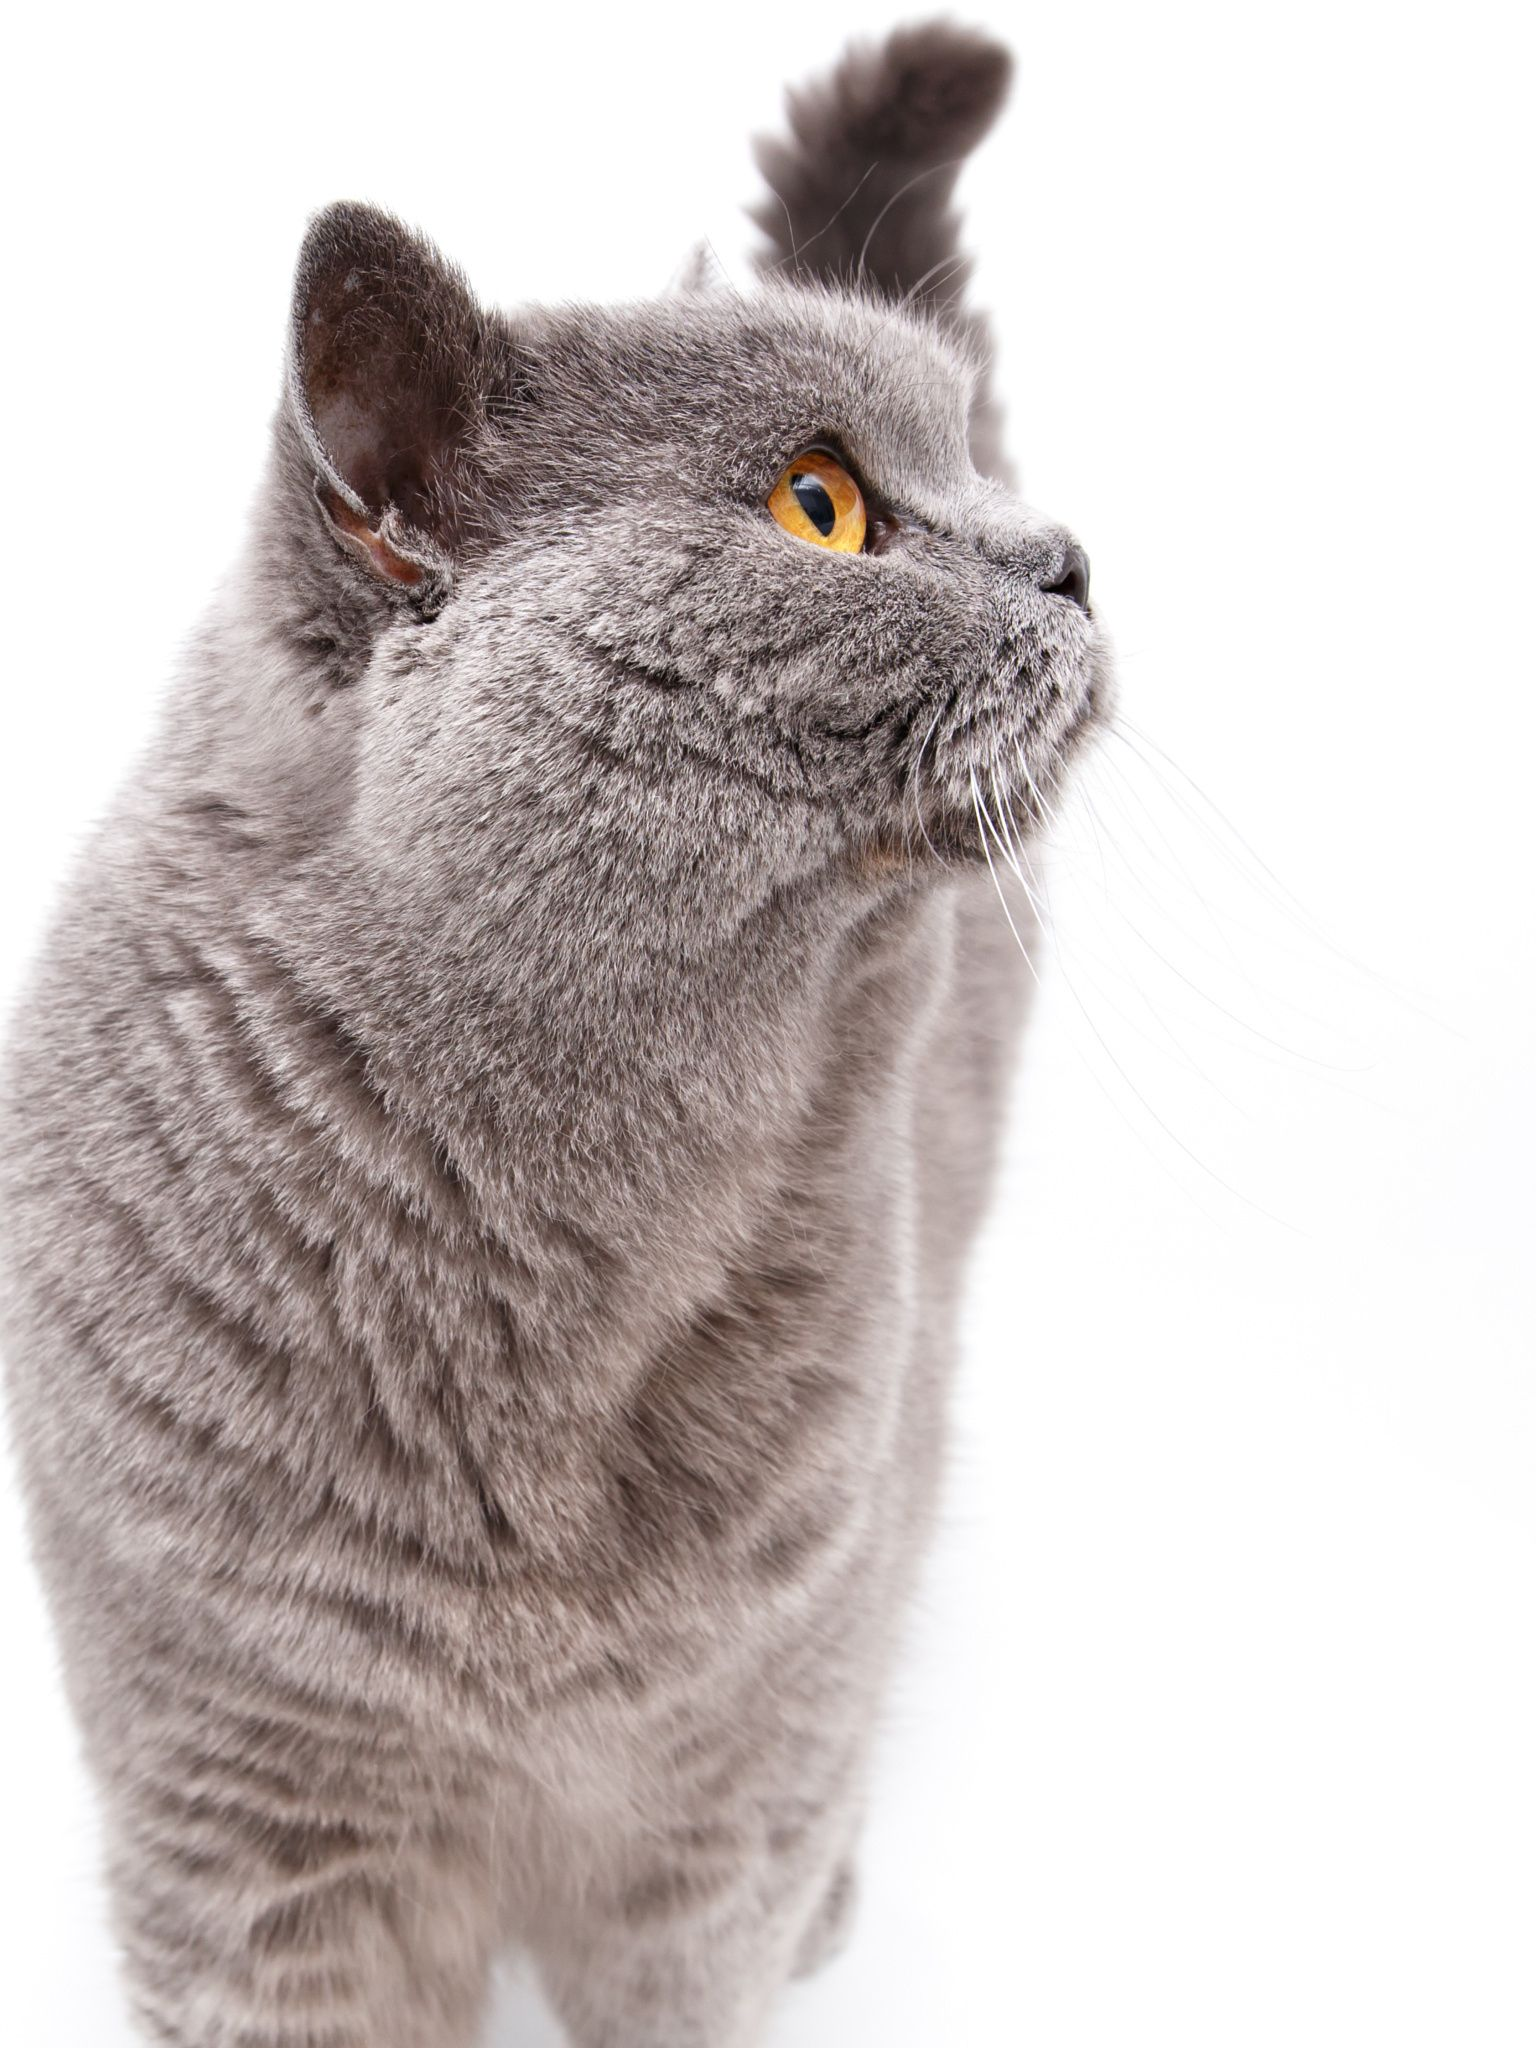 Portrait Of A Grey British Cat Portrait Of A Grey British Cat Isolated On White Background British Blue Cat Grey Cats Dog Cat Pictures